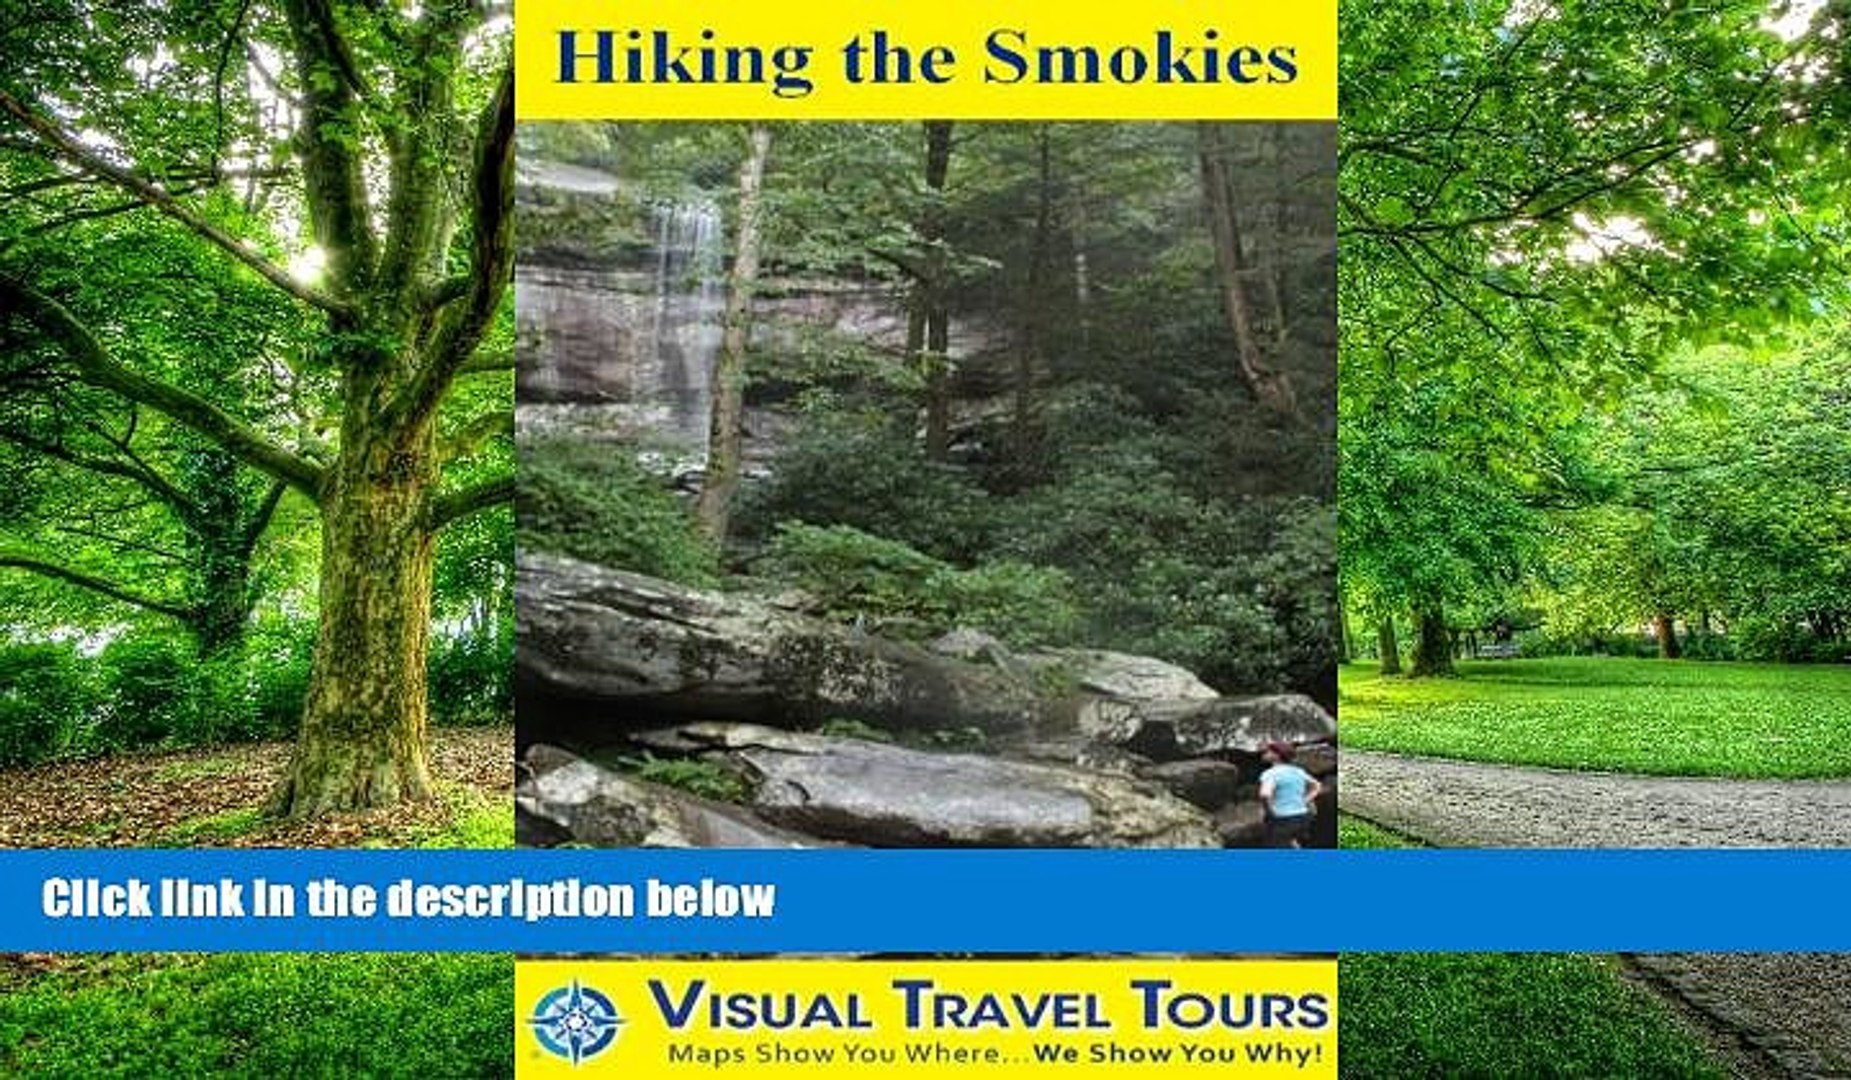 Hiking the Smokies: A Self-guided Pictorial Hiking Tour (Visual Travel Tours Book 197)